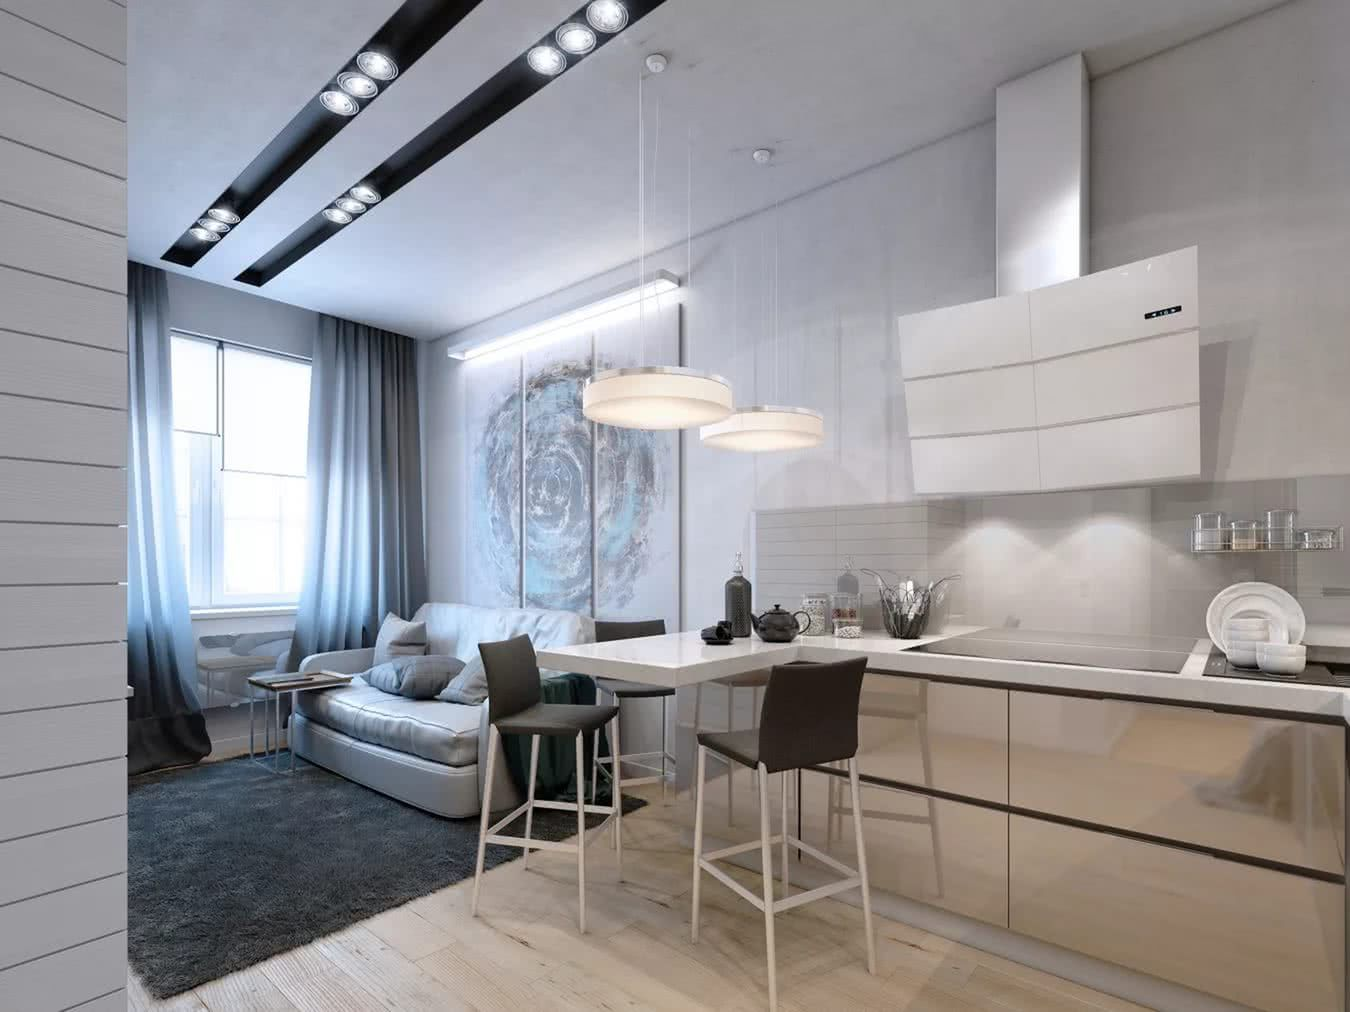 Open layout of the living room with milky kitchen zone and bar counter separates the dining zone